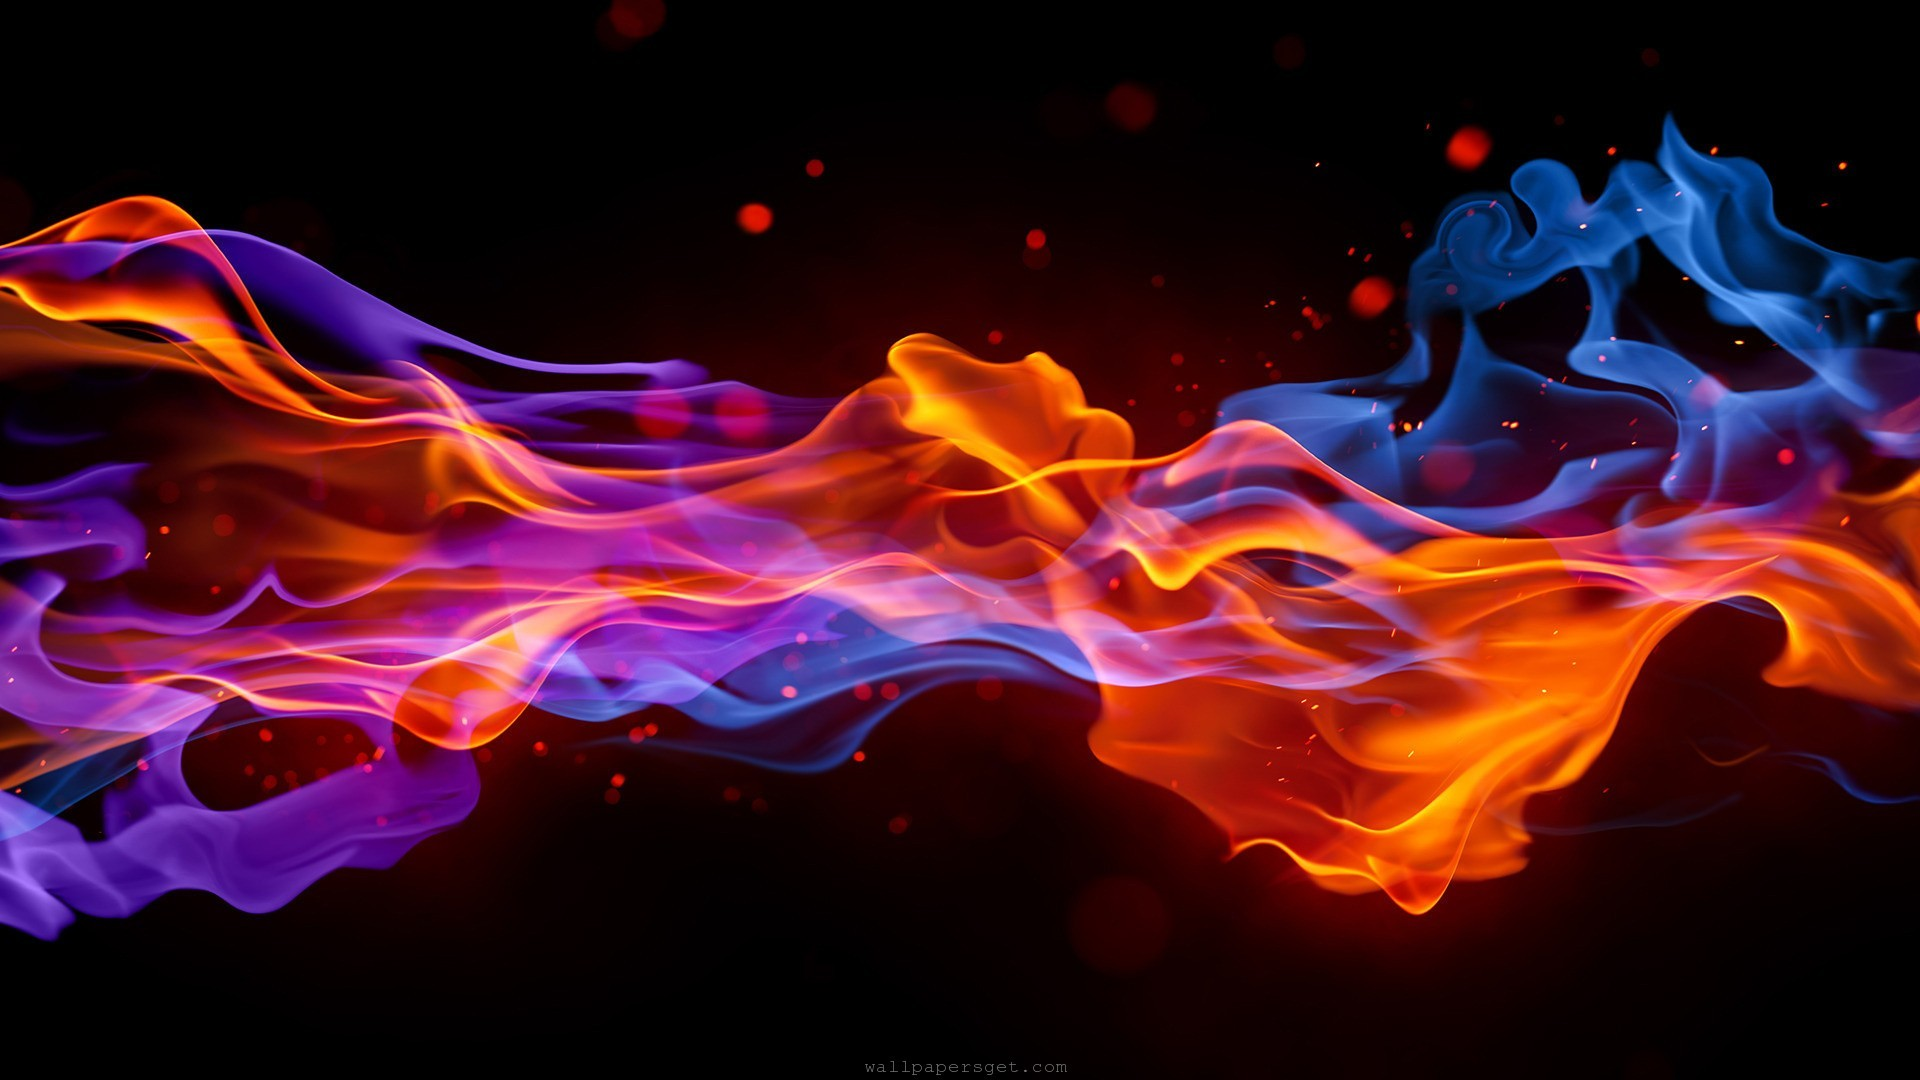 Abstract Smoke Fire Red Blue Wallpaper Hd